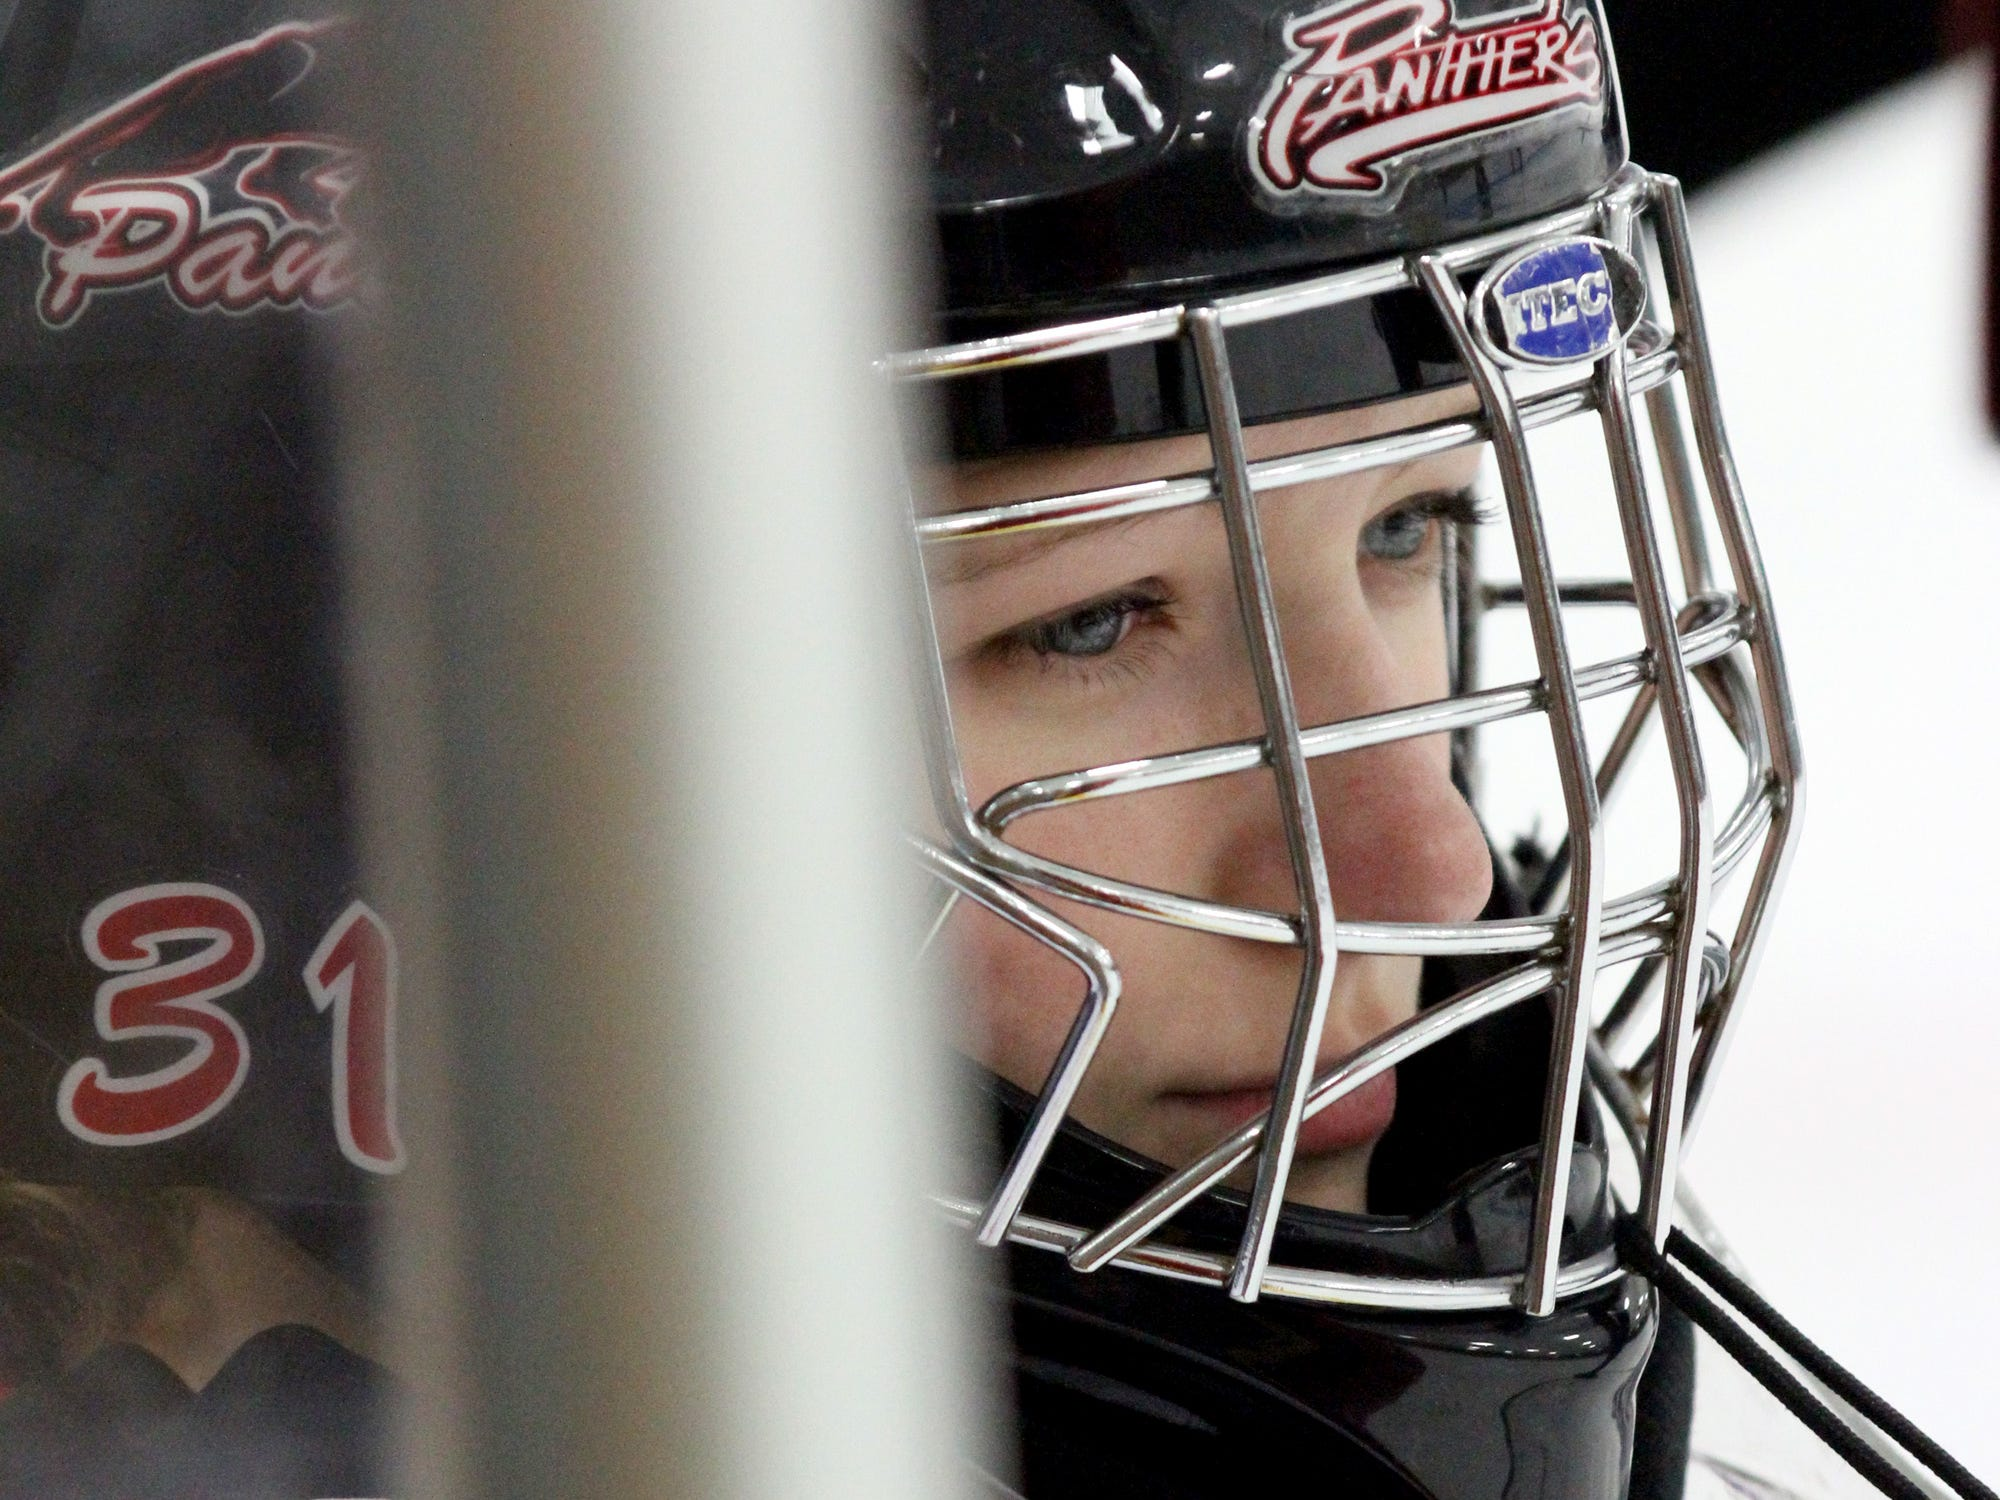 Point/Rapids senior goalie Emily Bubla has been between the pipes for the Red Panthers for all four years of her high school hockey career.